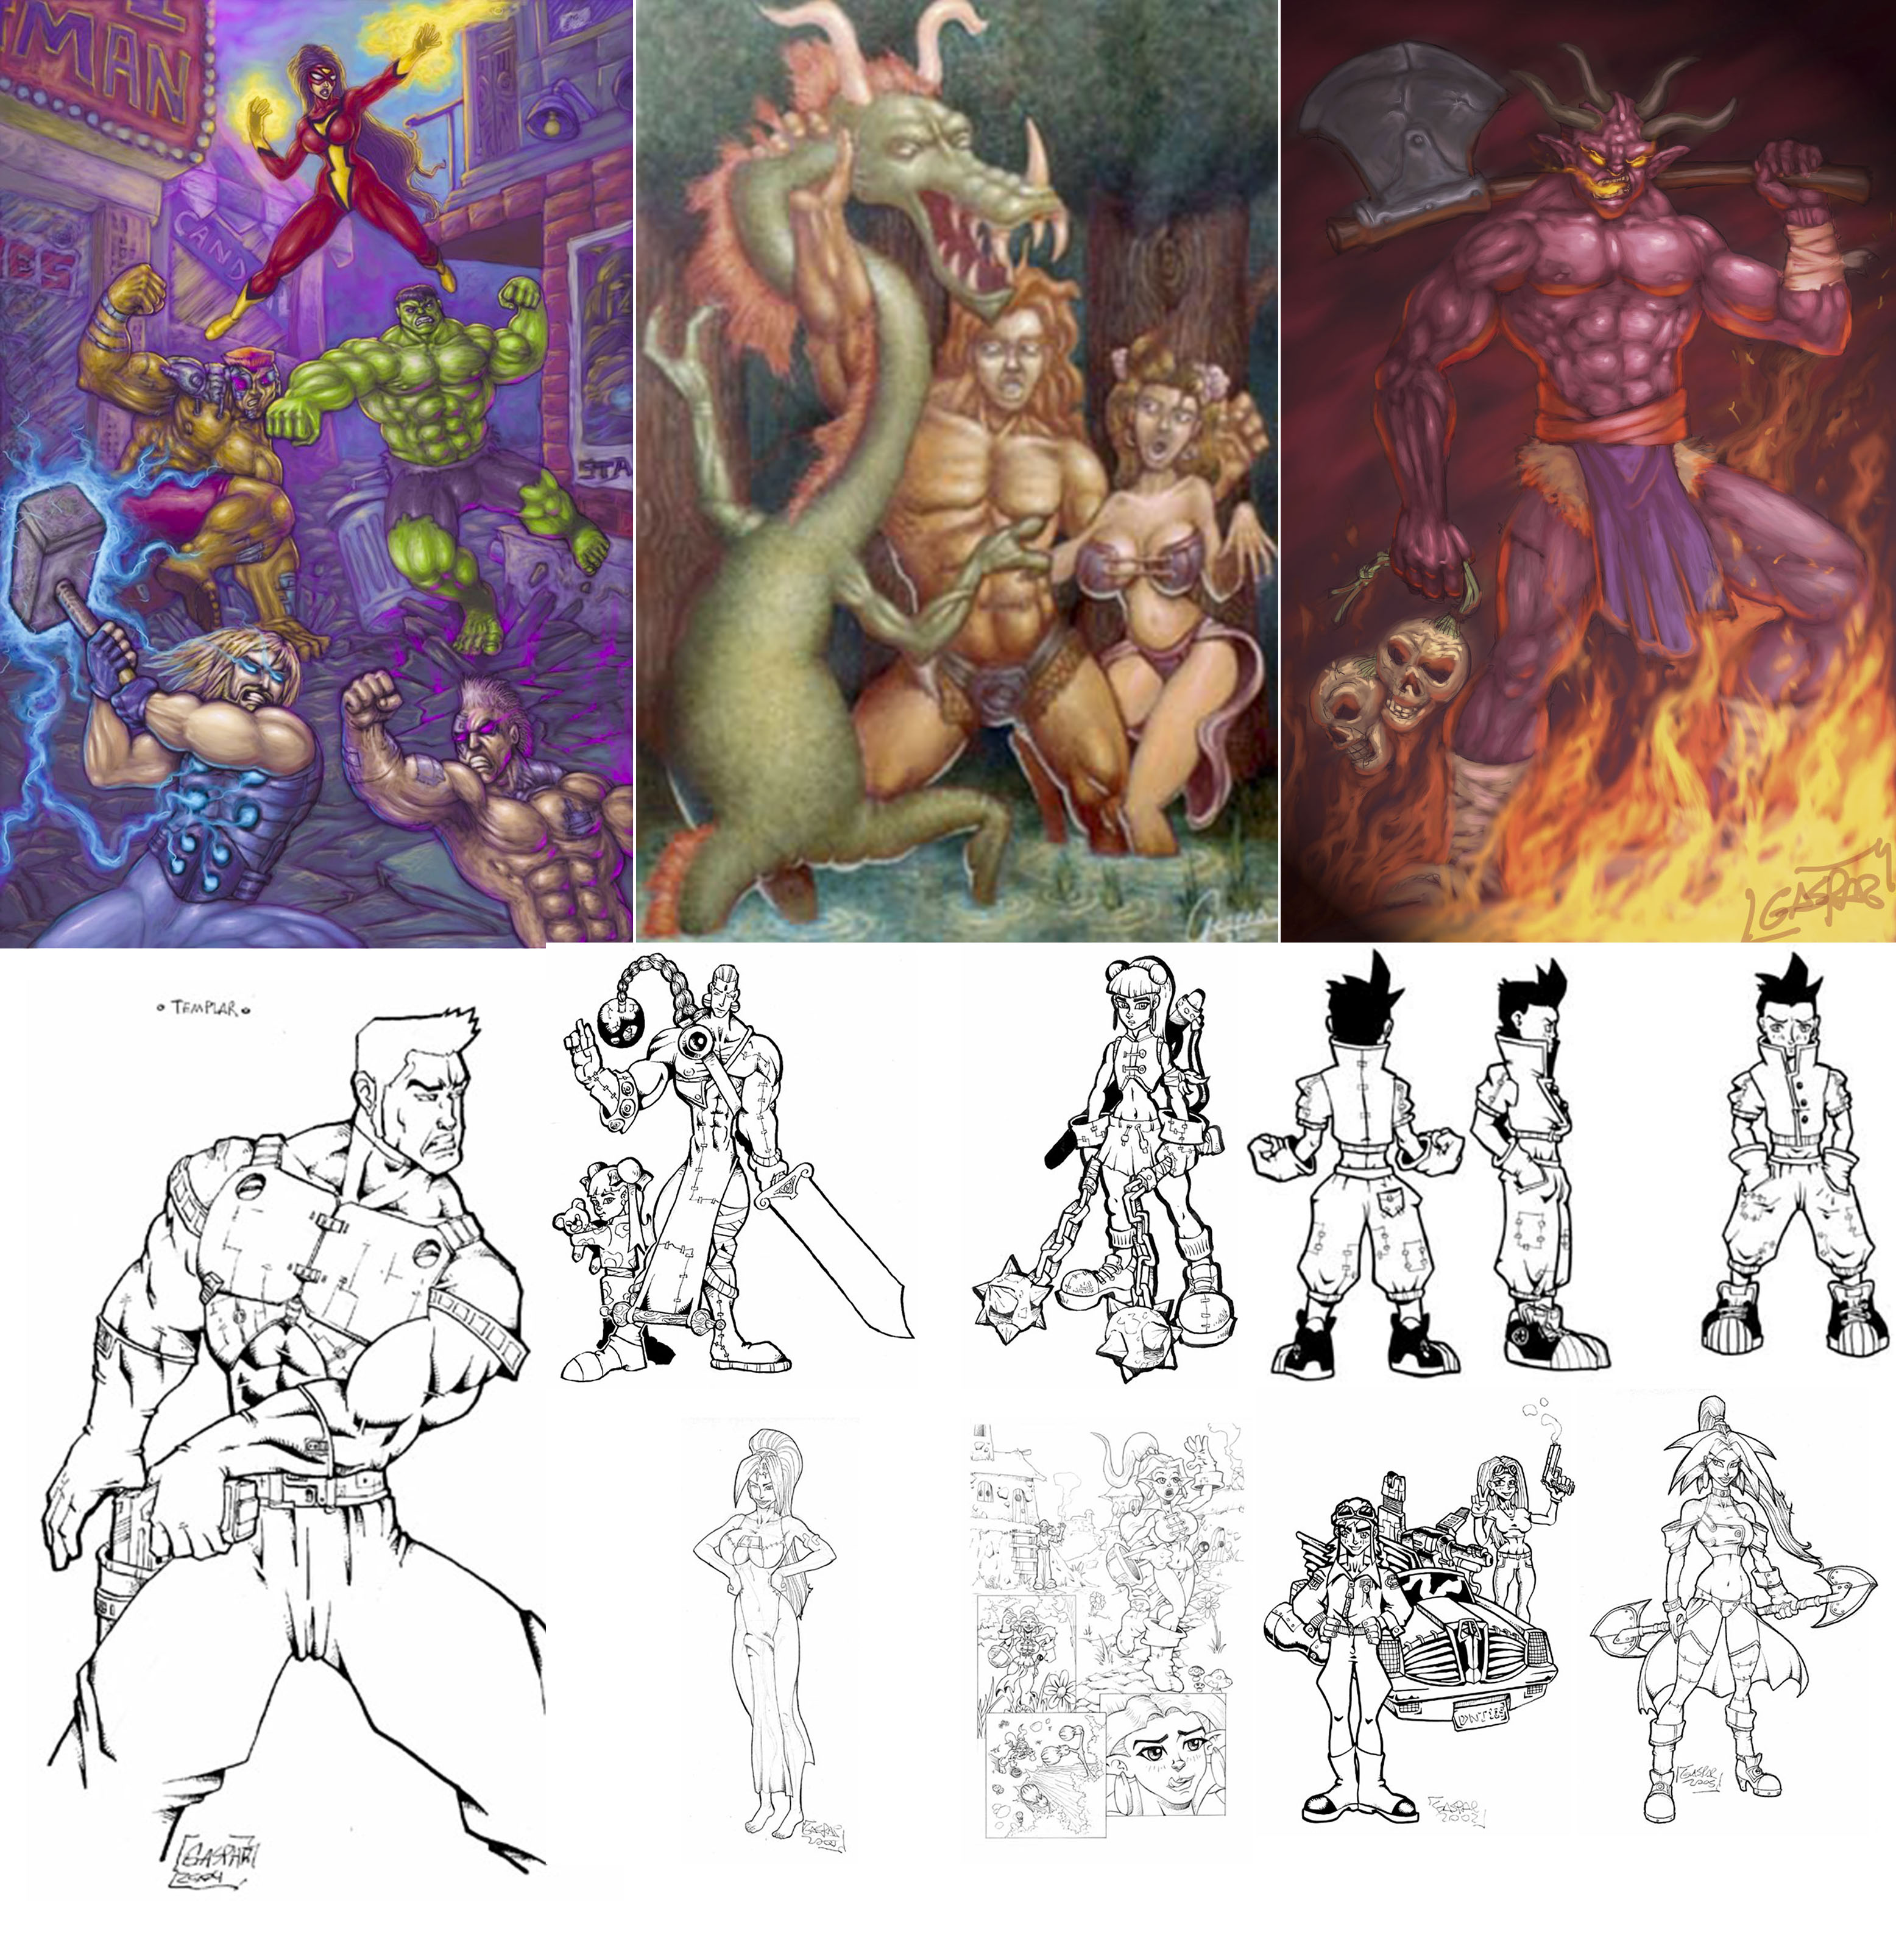 draw and paint any fantasy character or creature in Painter or Photoshop